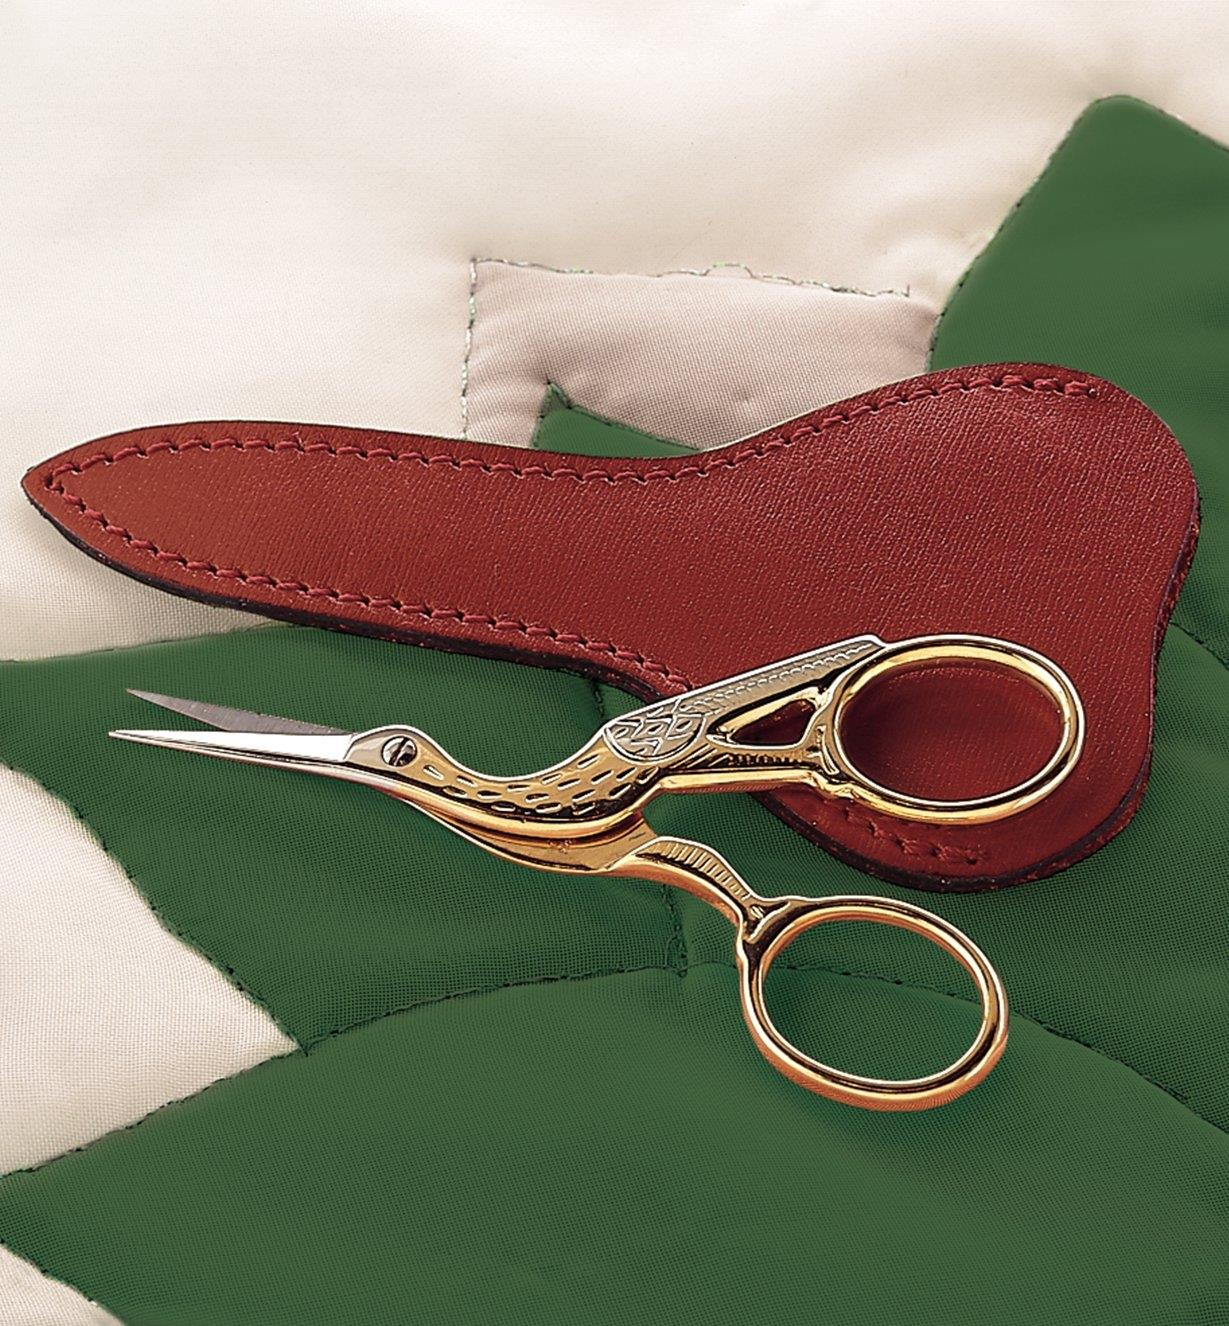 Stork Scissors and Sheath lying on a quilt